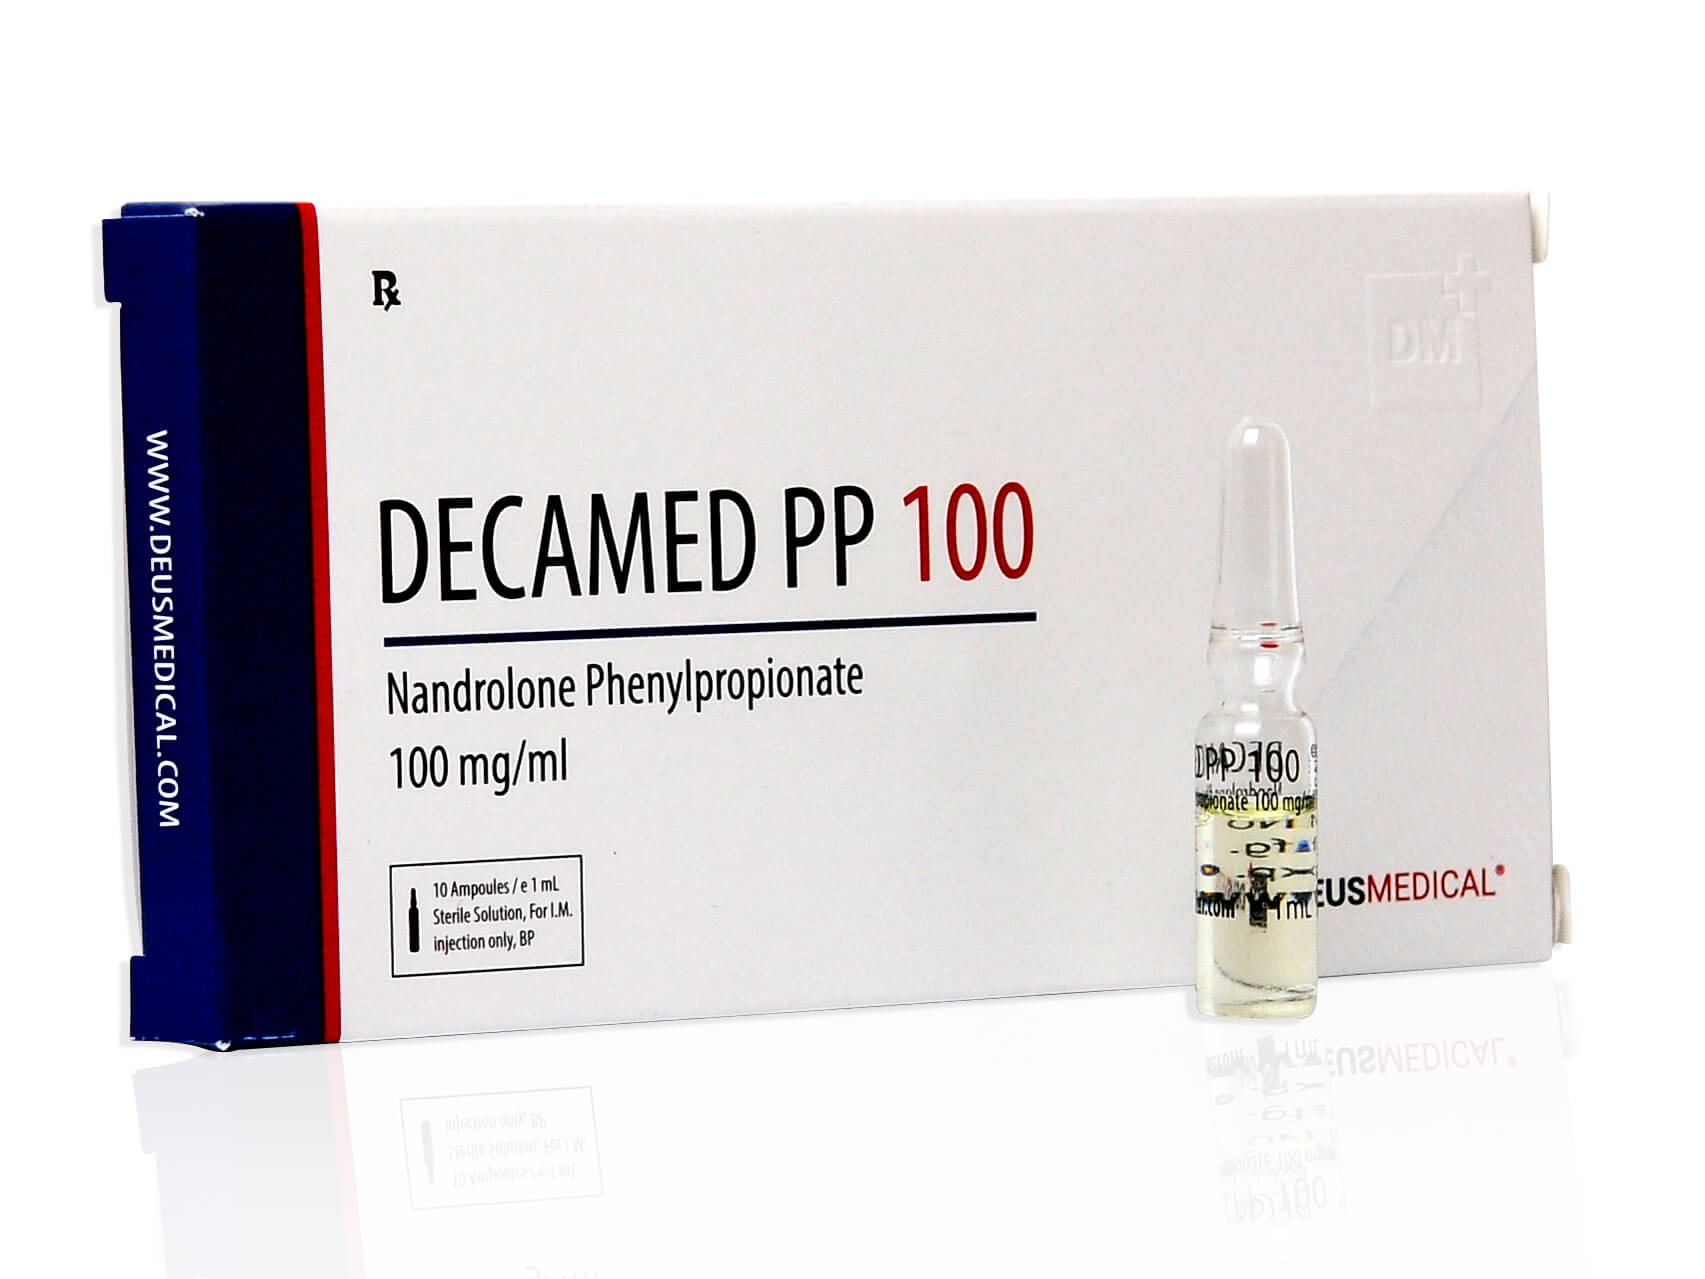 DECAMED PP 100 (Nandrolone Phenylpropionate) - 10amps of 1ml - DEUS-MEDICAL - body-building